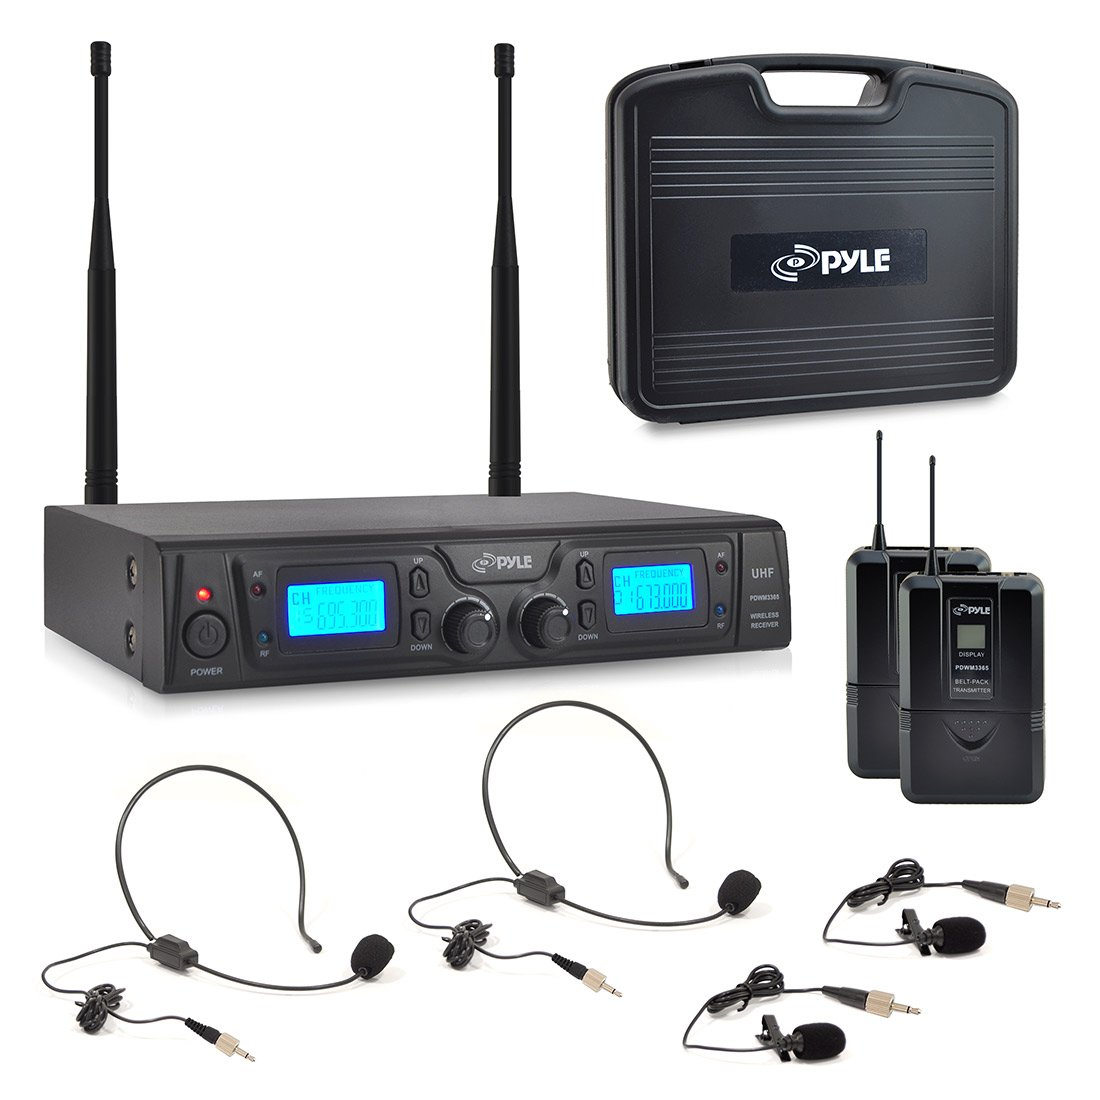 Pyle-Pro PDWM3360 Premier Series Uhf Wireless Microphone System with 2 Handheld Mics, Dual Charge Docks and Selectable Frequency